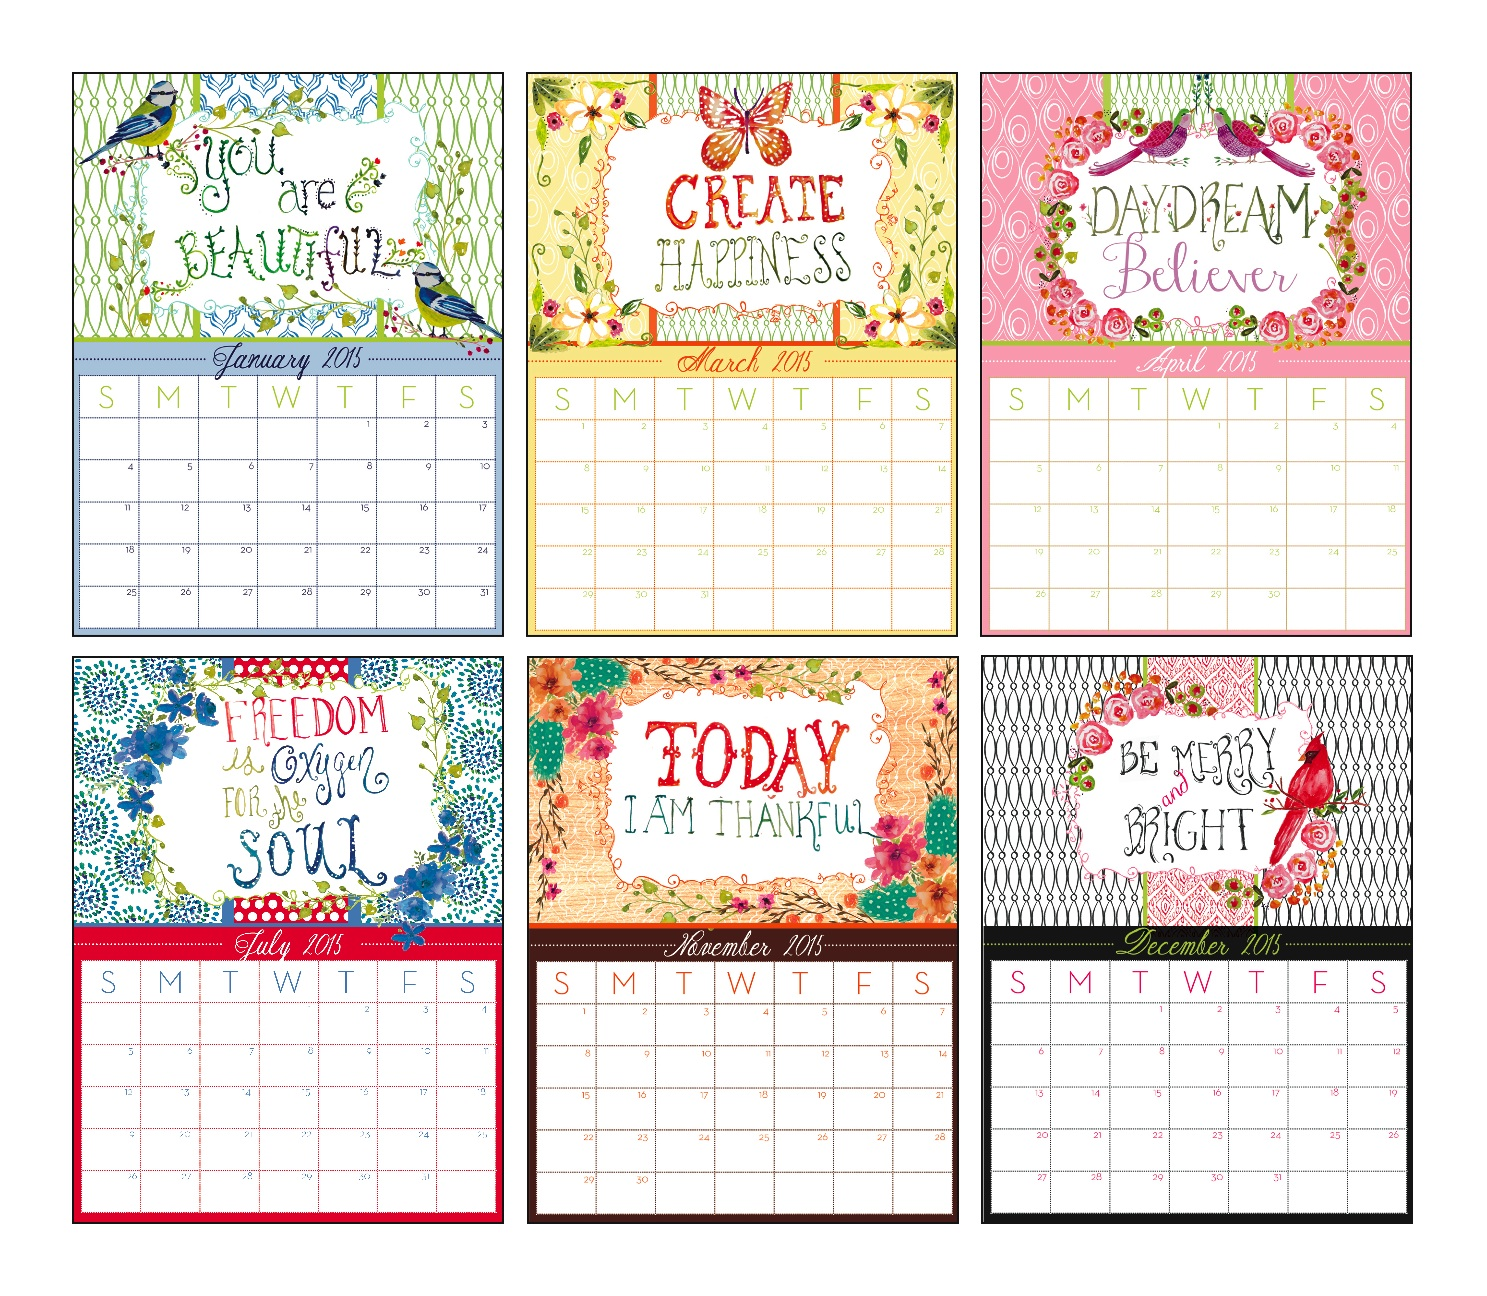 Calendar Design Price : Bella ink designs introduces new everyday